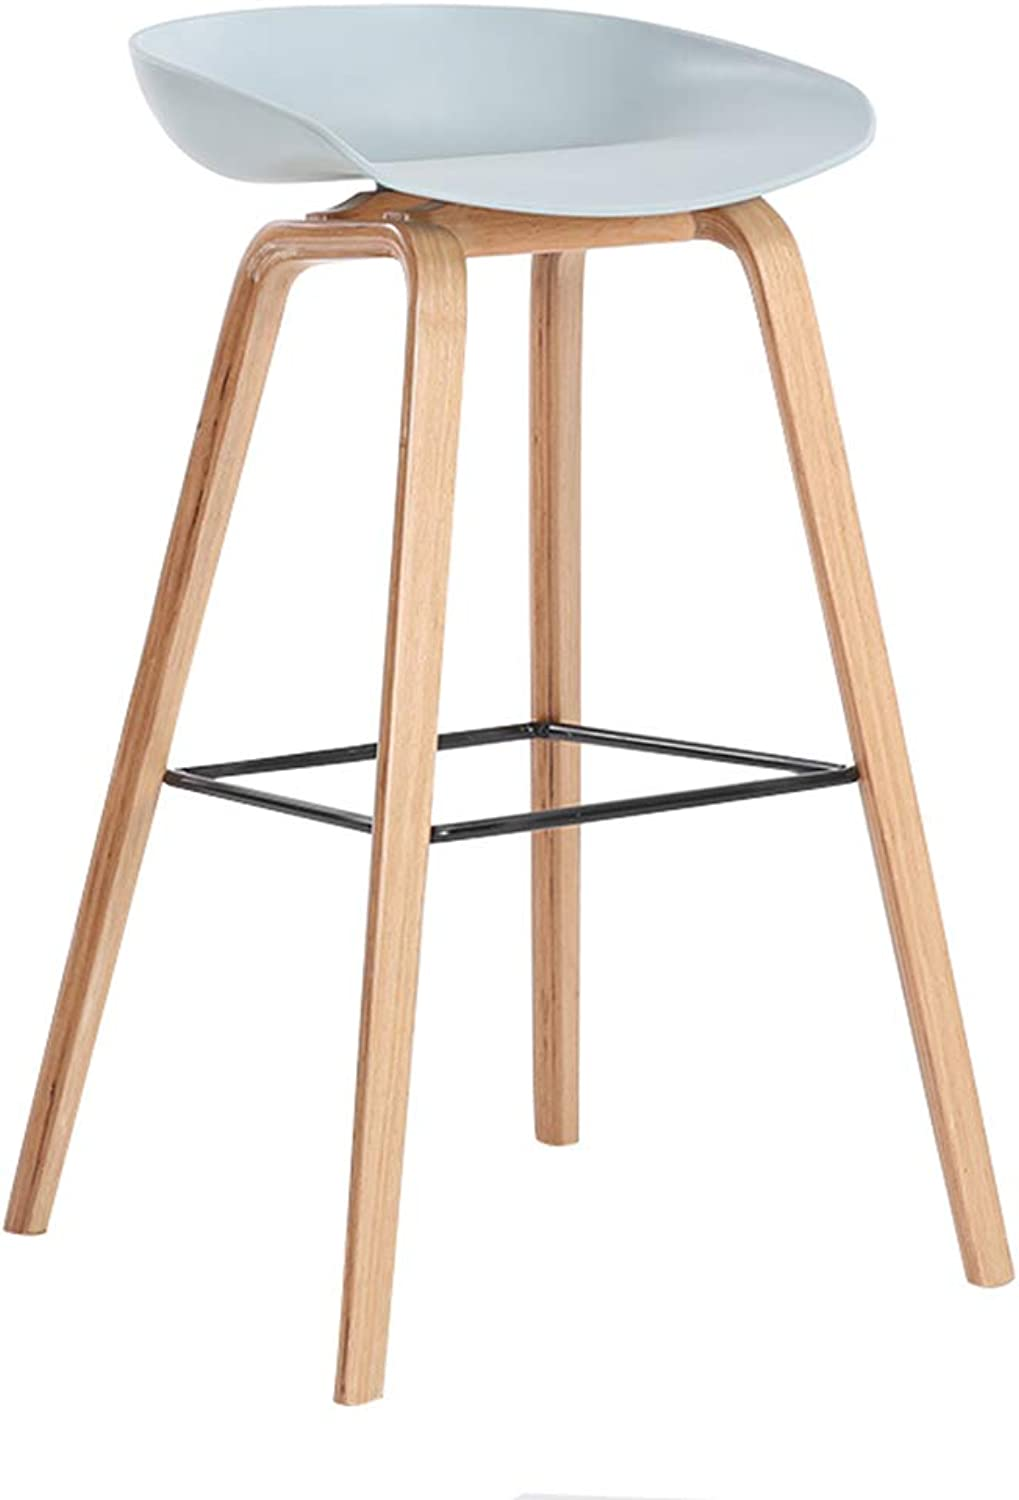 Barstool Bar Stool Kitchen Solid Wood Bar Table Cafe Chair Simple Modern Fashion Front Desk Home High European Nordic Leisure Creative (Size   76  49CM)